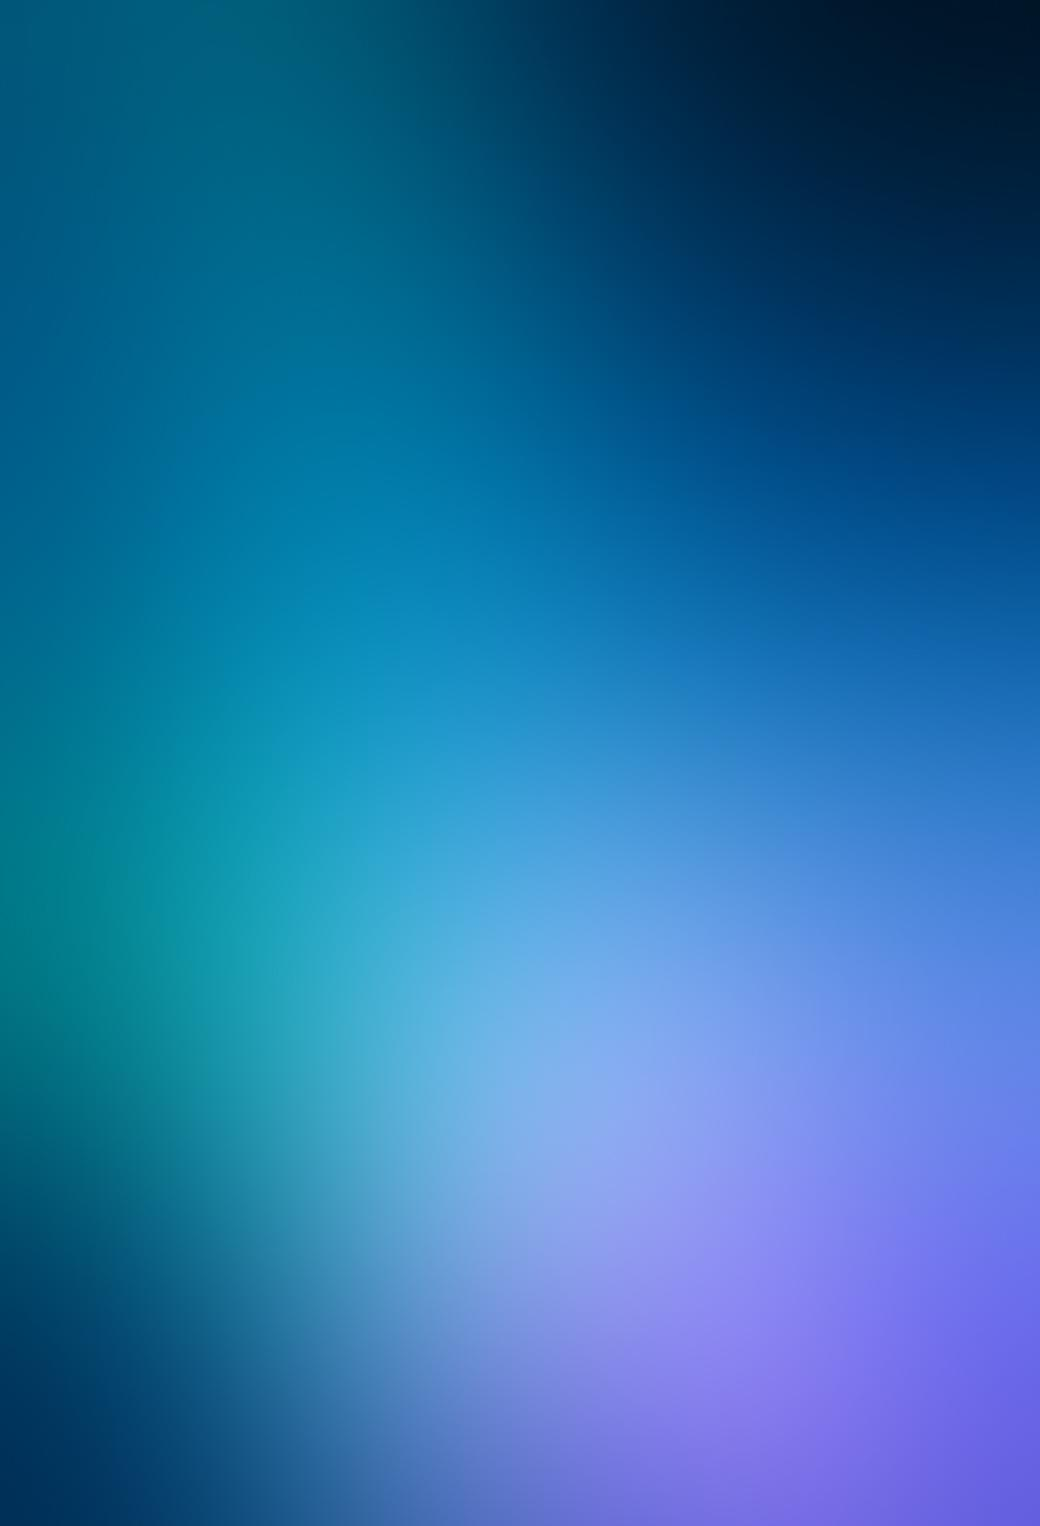 Ios 14 Wallpapers Wallpaper Cave